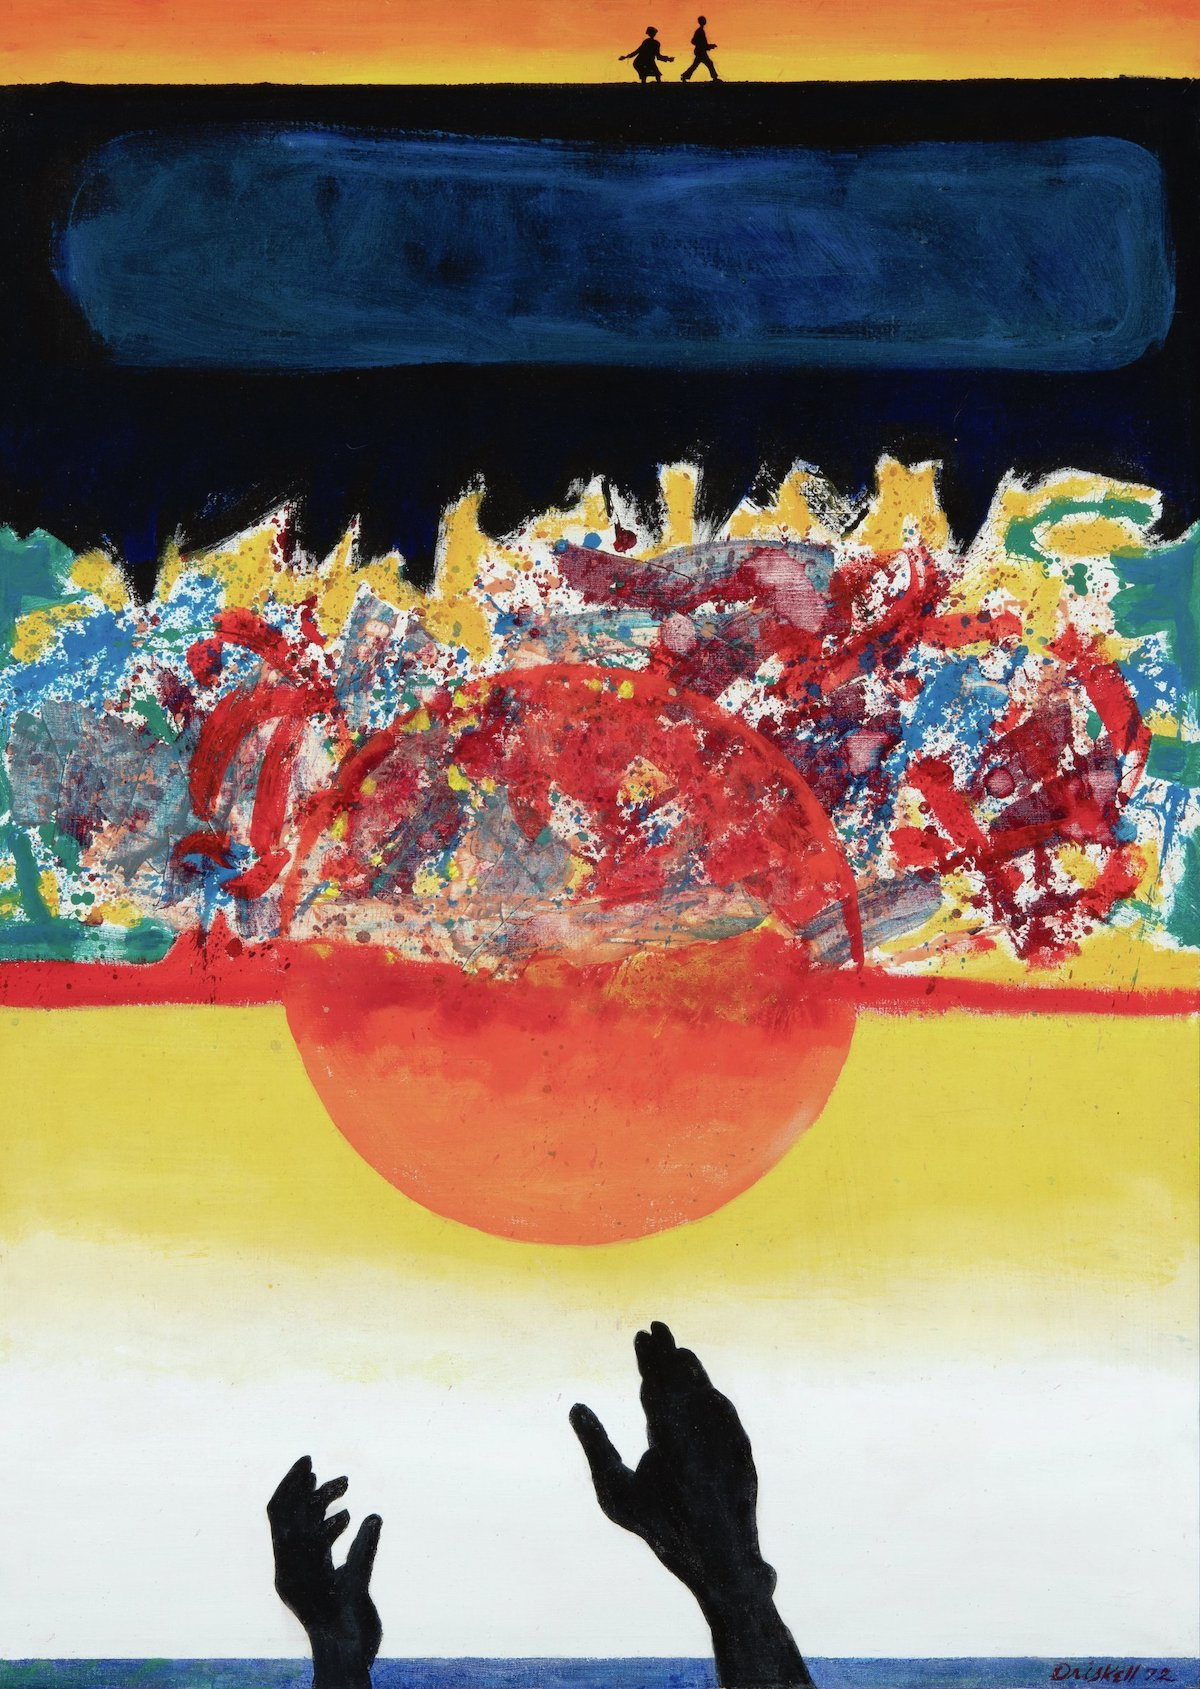 David C. Driskell, 'Swing Low, Sweet Chariot,' 1972. Two small figures walk atop a black and blue ground, which hangs over a mass of abstract forms. Superimposed over this is a sun with hands reaching toward it.